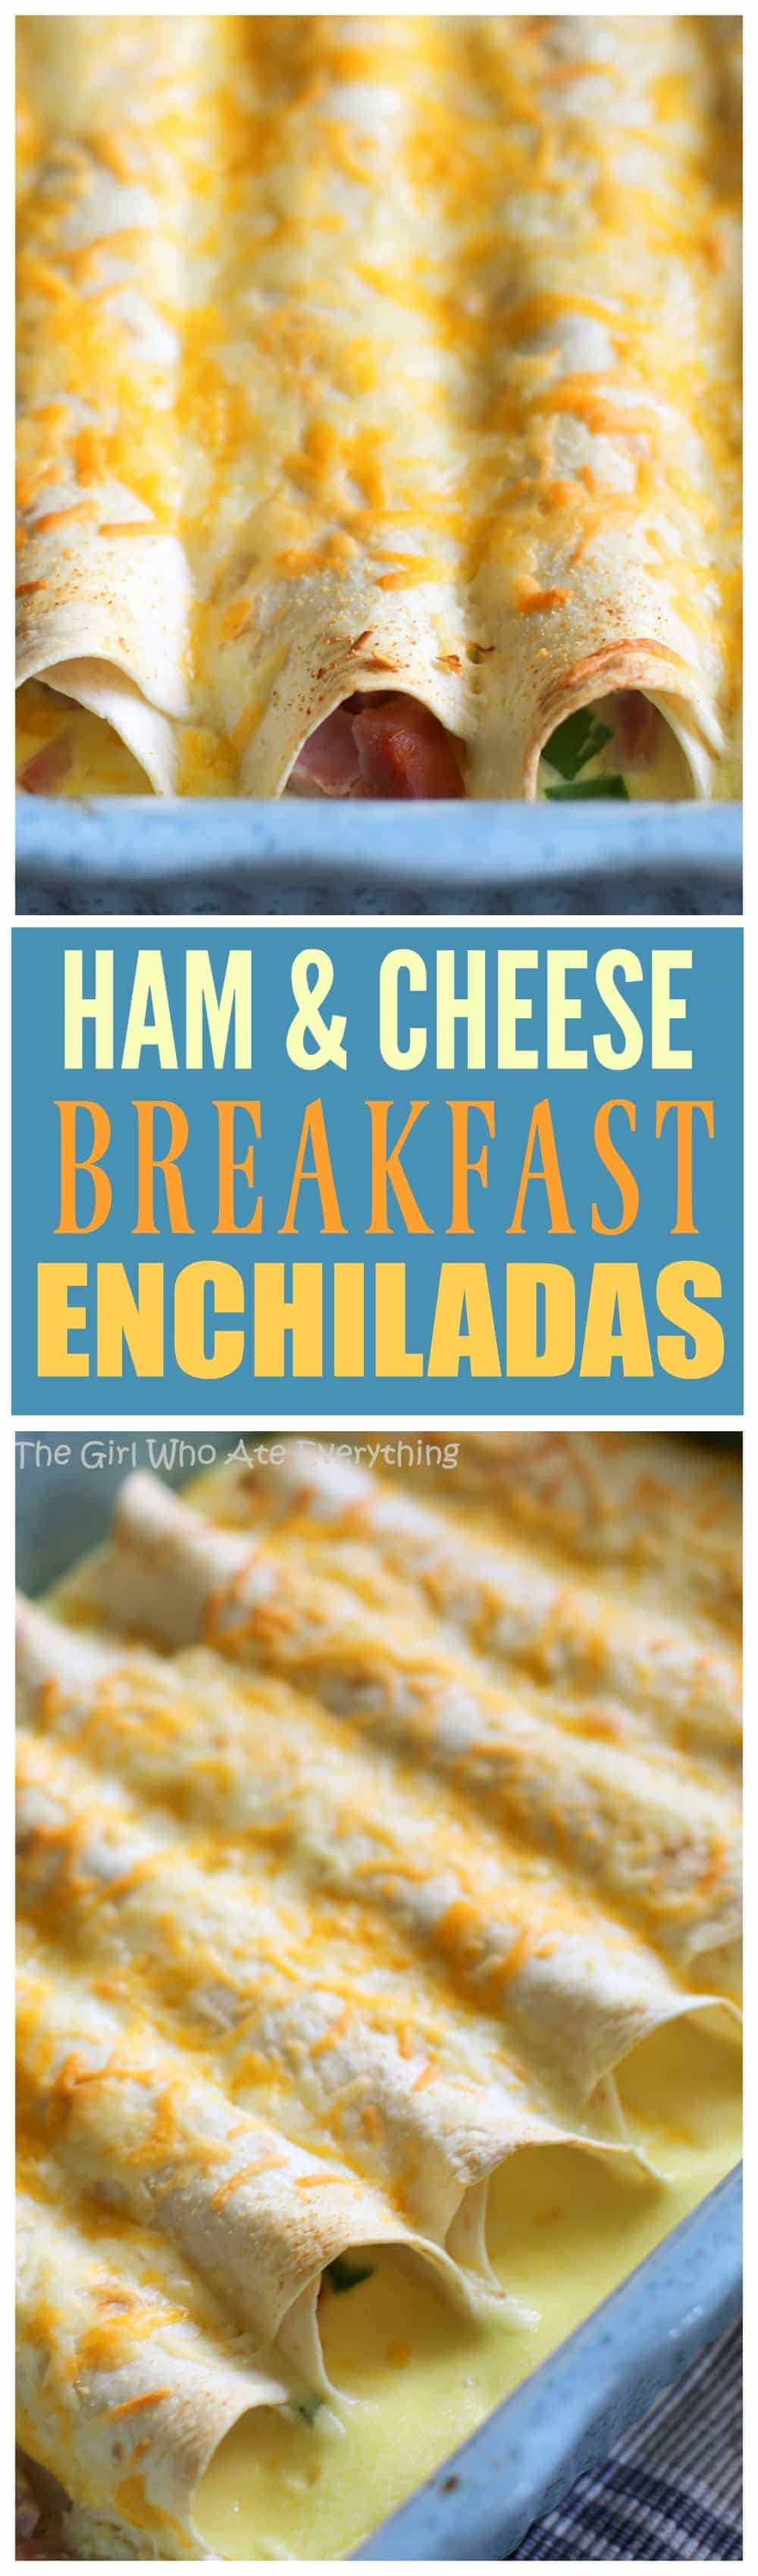 Ham and Cheese Breakfast Enchiladas - great for entertaining! the-girl-who-ate-everything.com